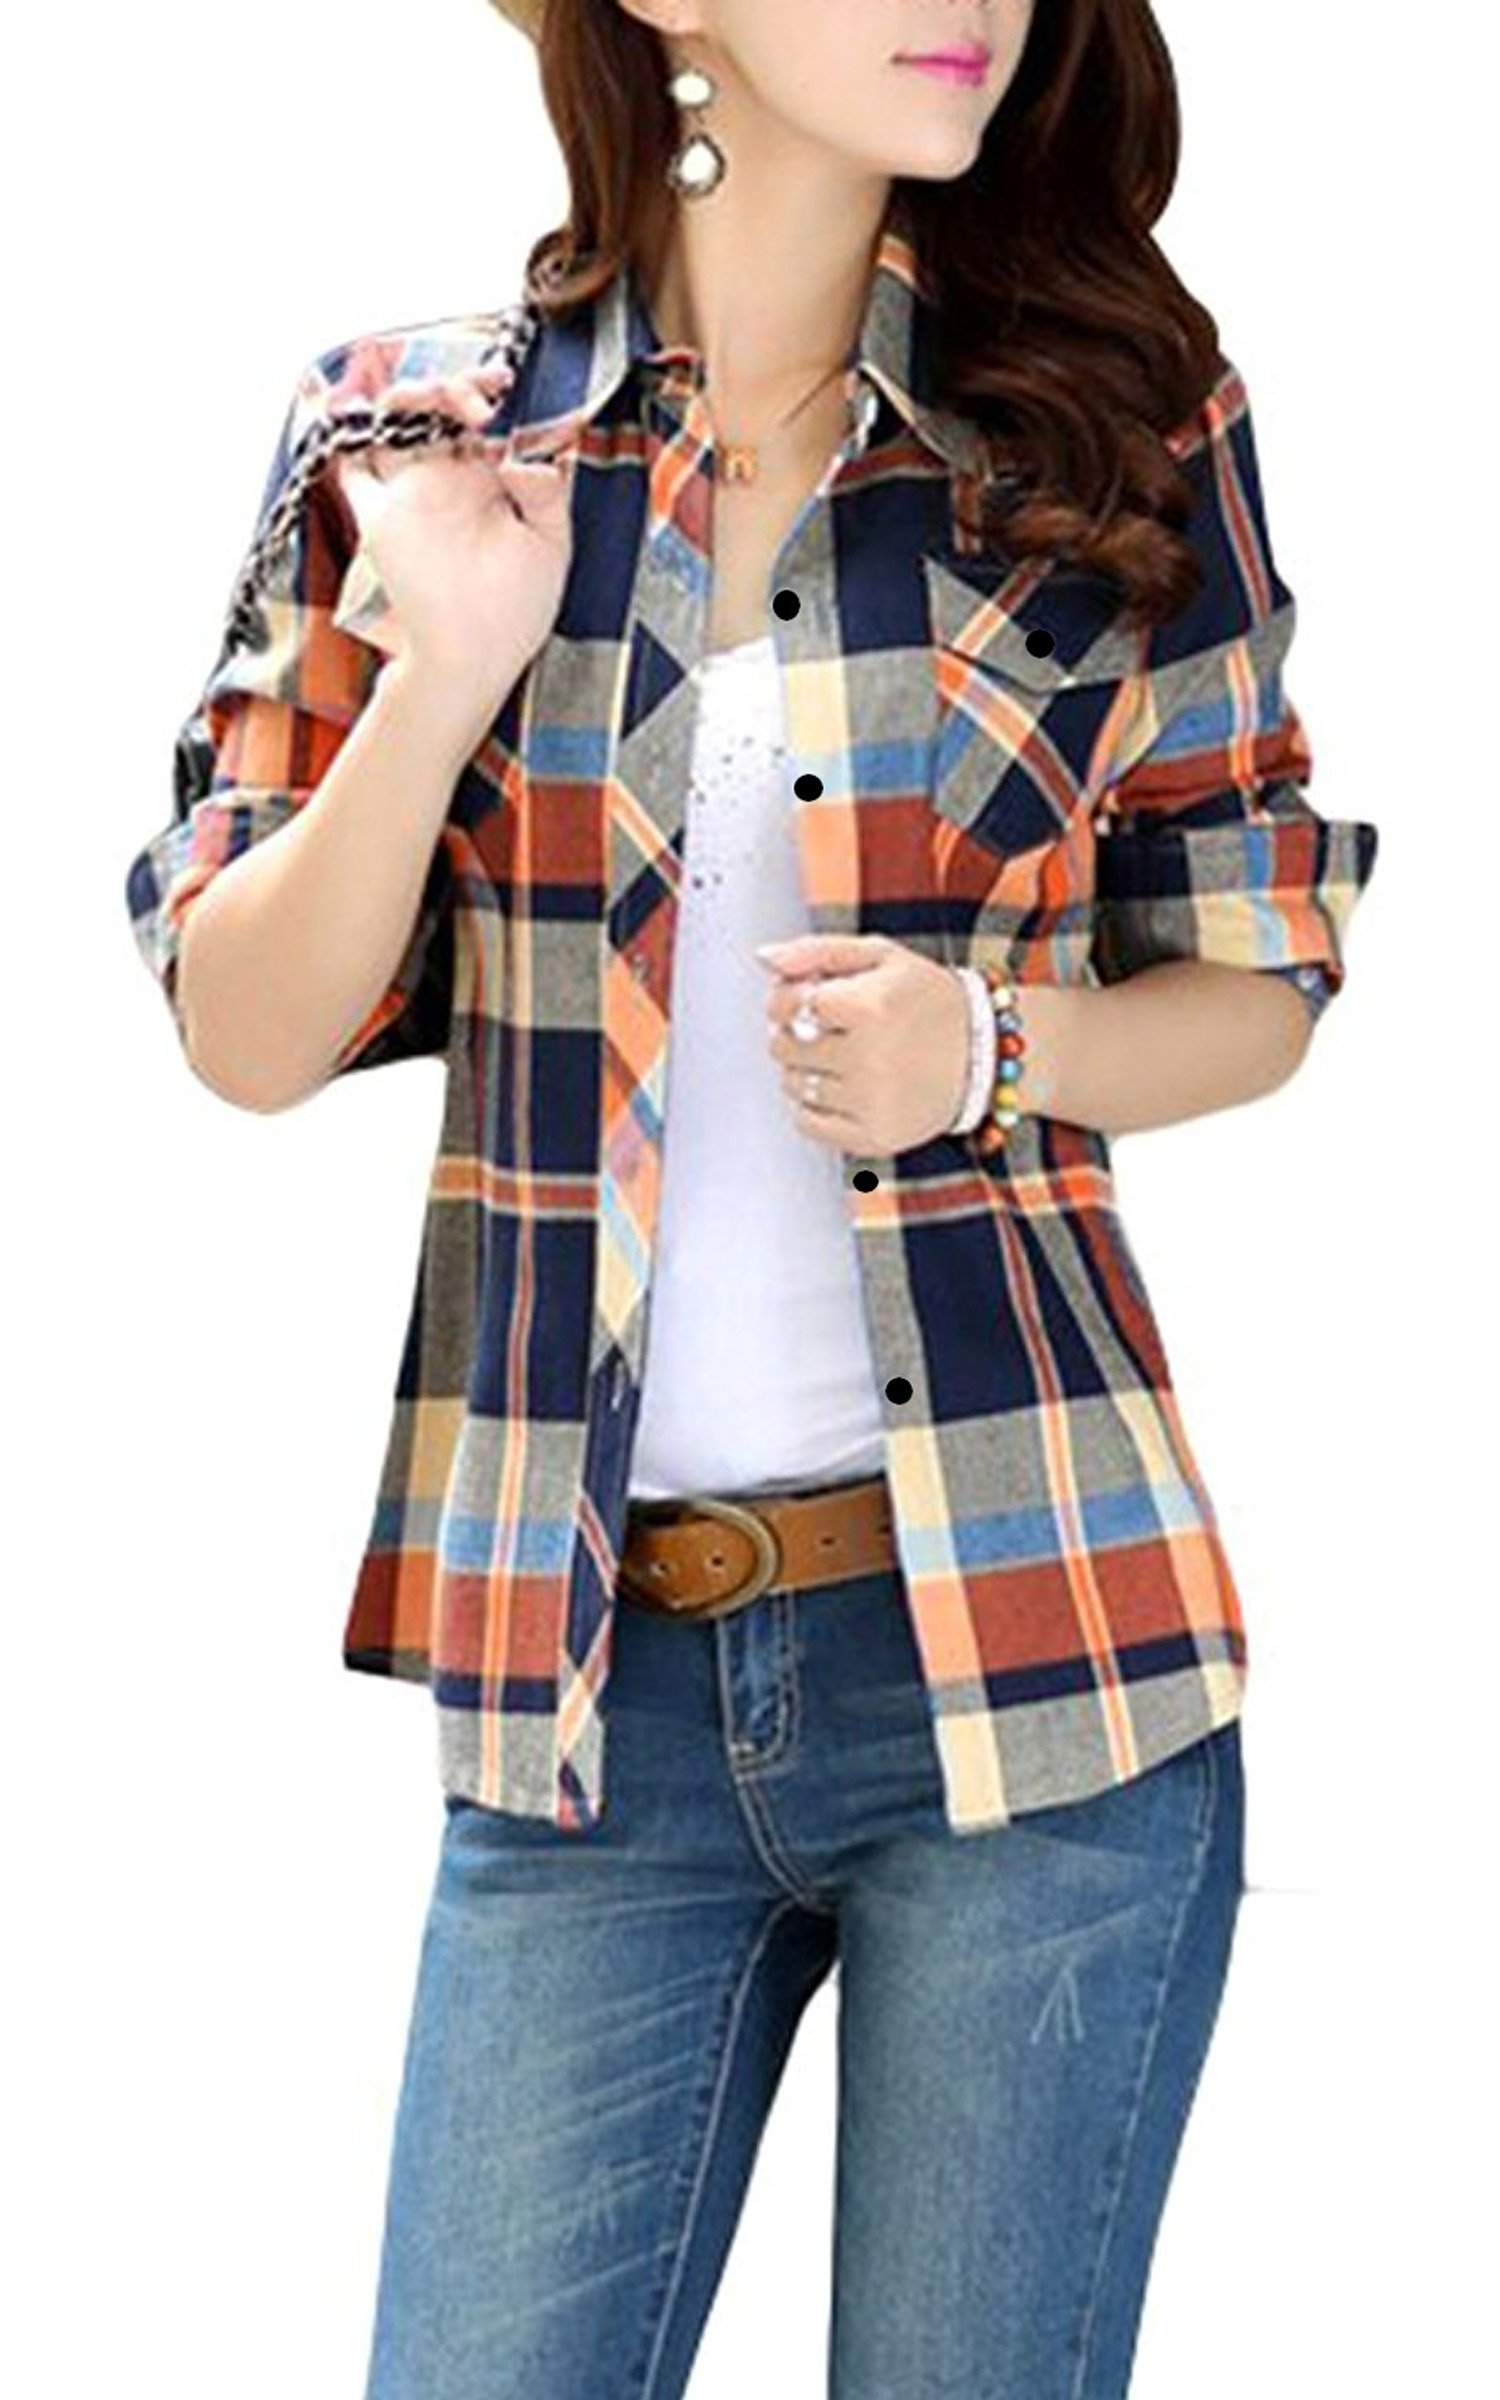 FShop365 Women Mid-Long Style Roll-Up Sleeve Plaid Shirt Orange M